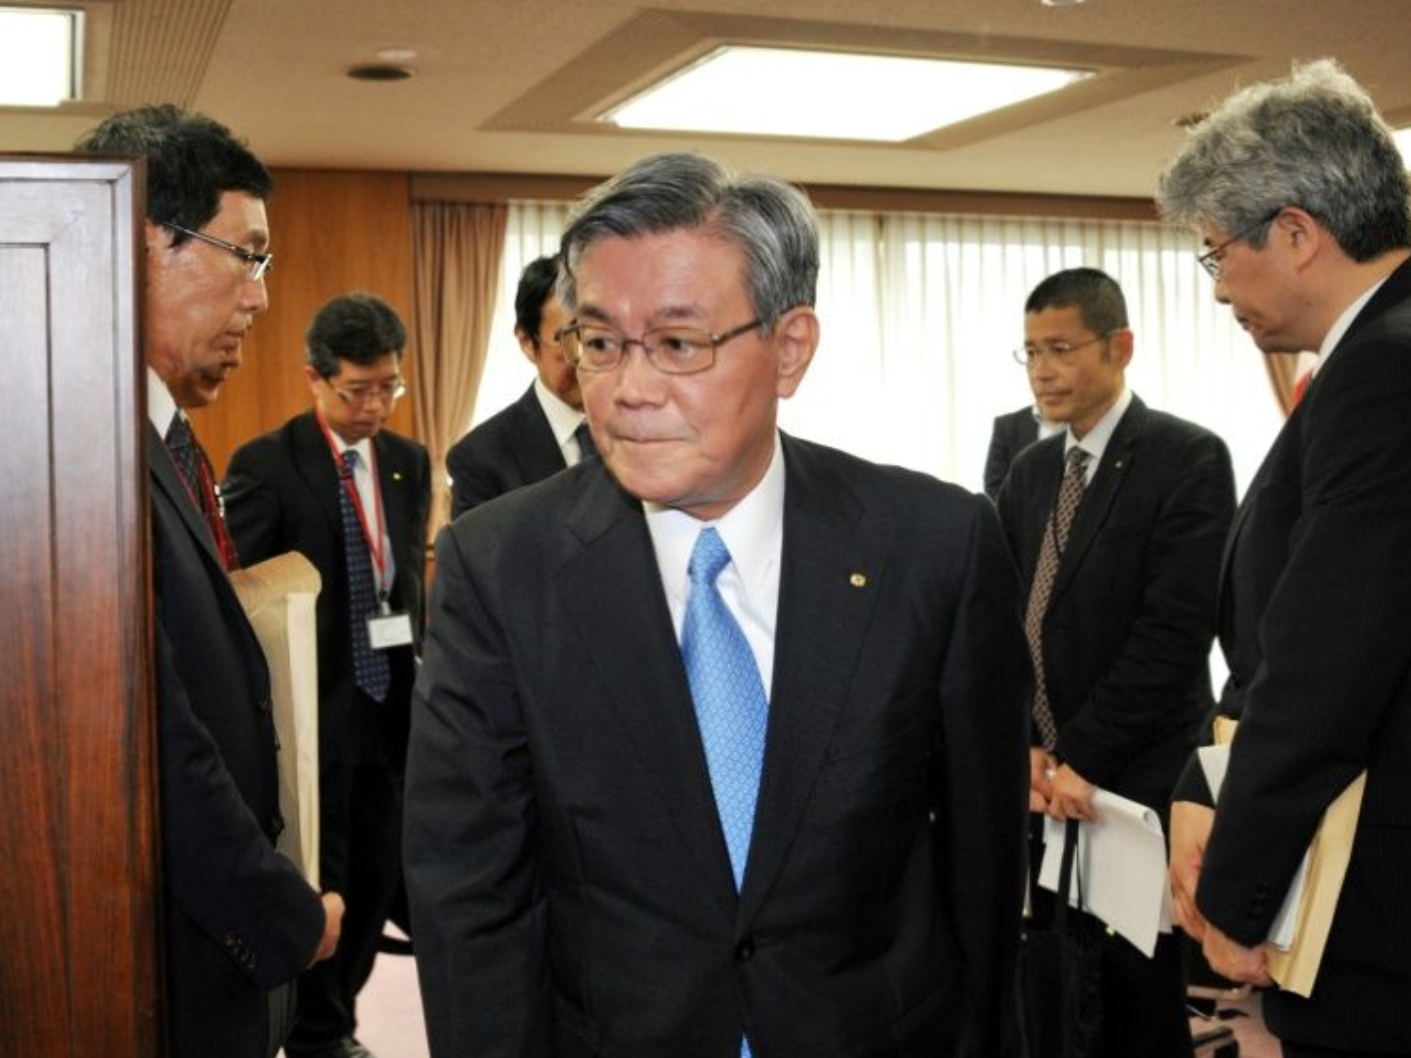 Japan power firm executives quit over $3 million gift scandal